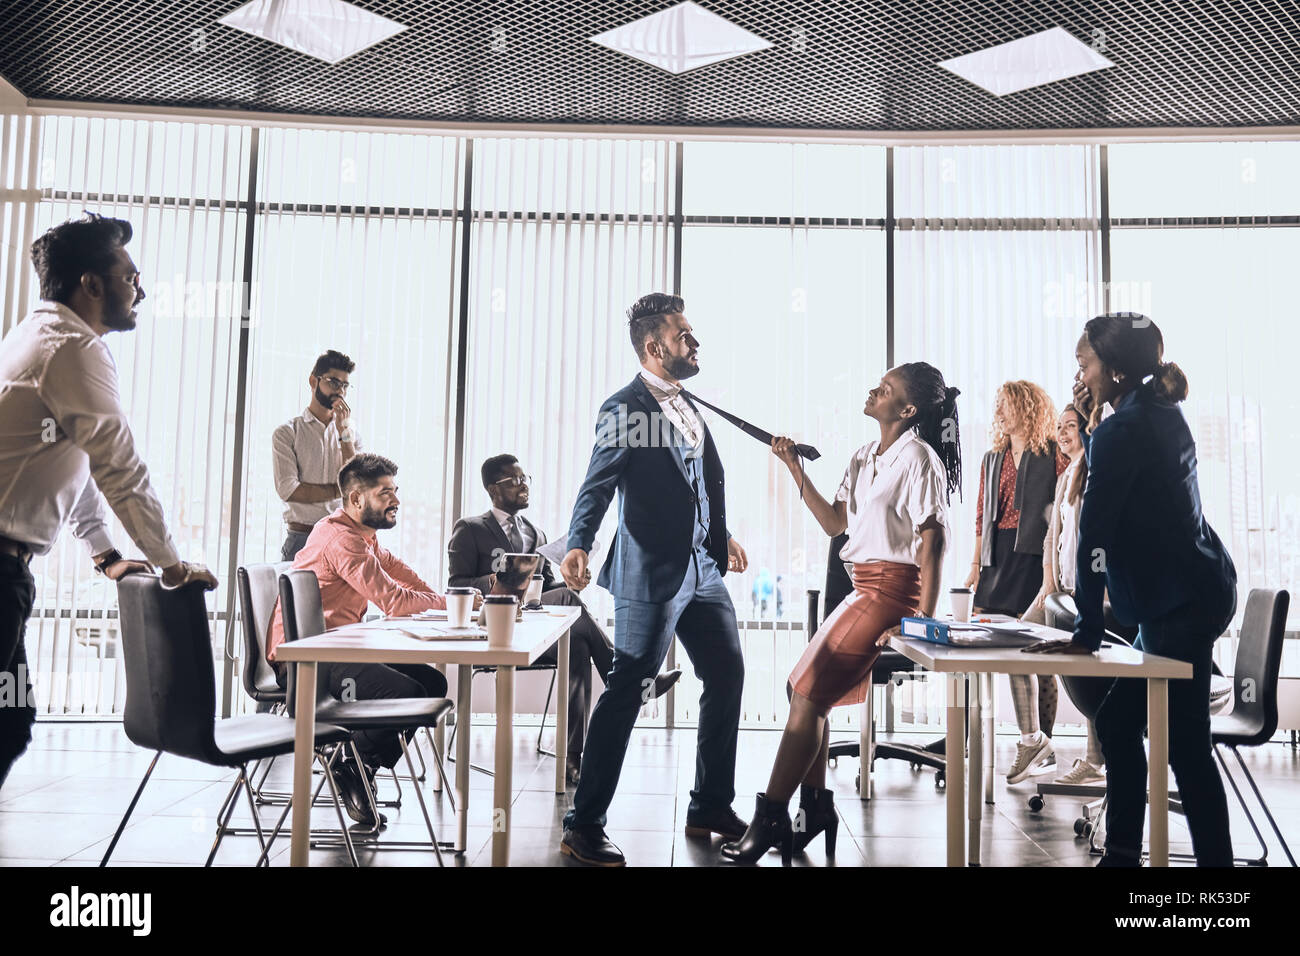 family onflict angry woman arguing with her male colleague. feeling, negative emotion during work, awesome beautiful american girl flirting with her c - Stock Image